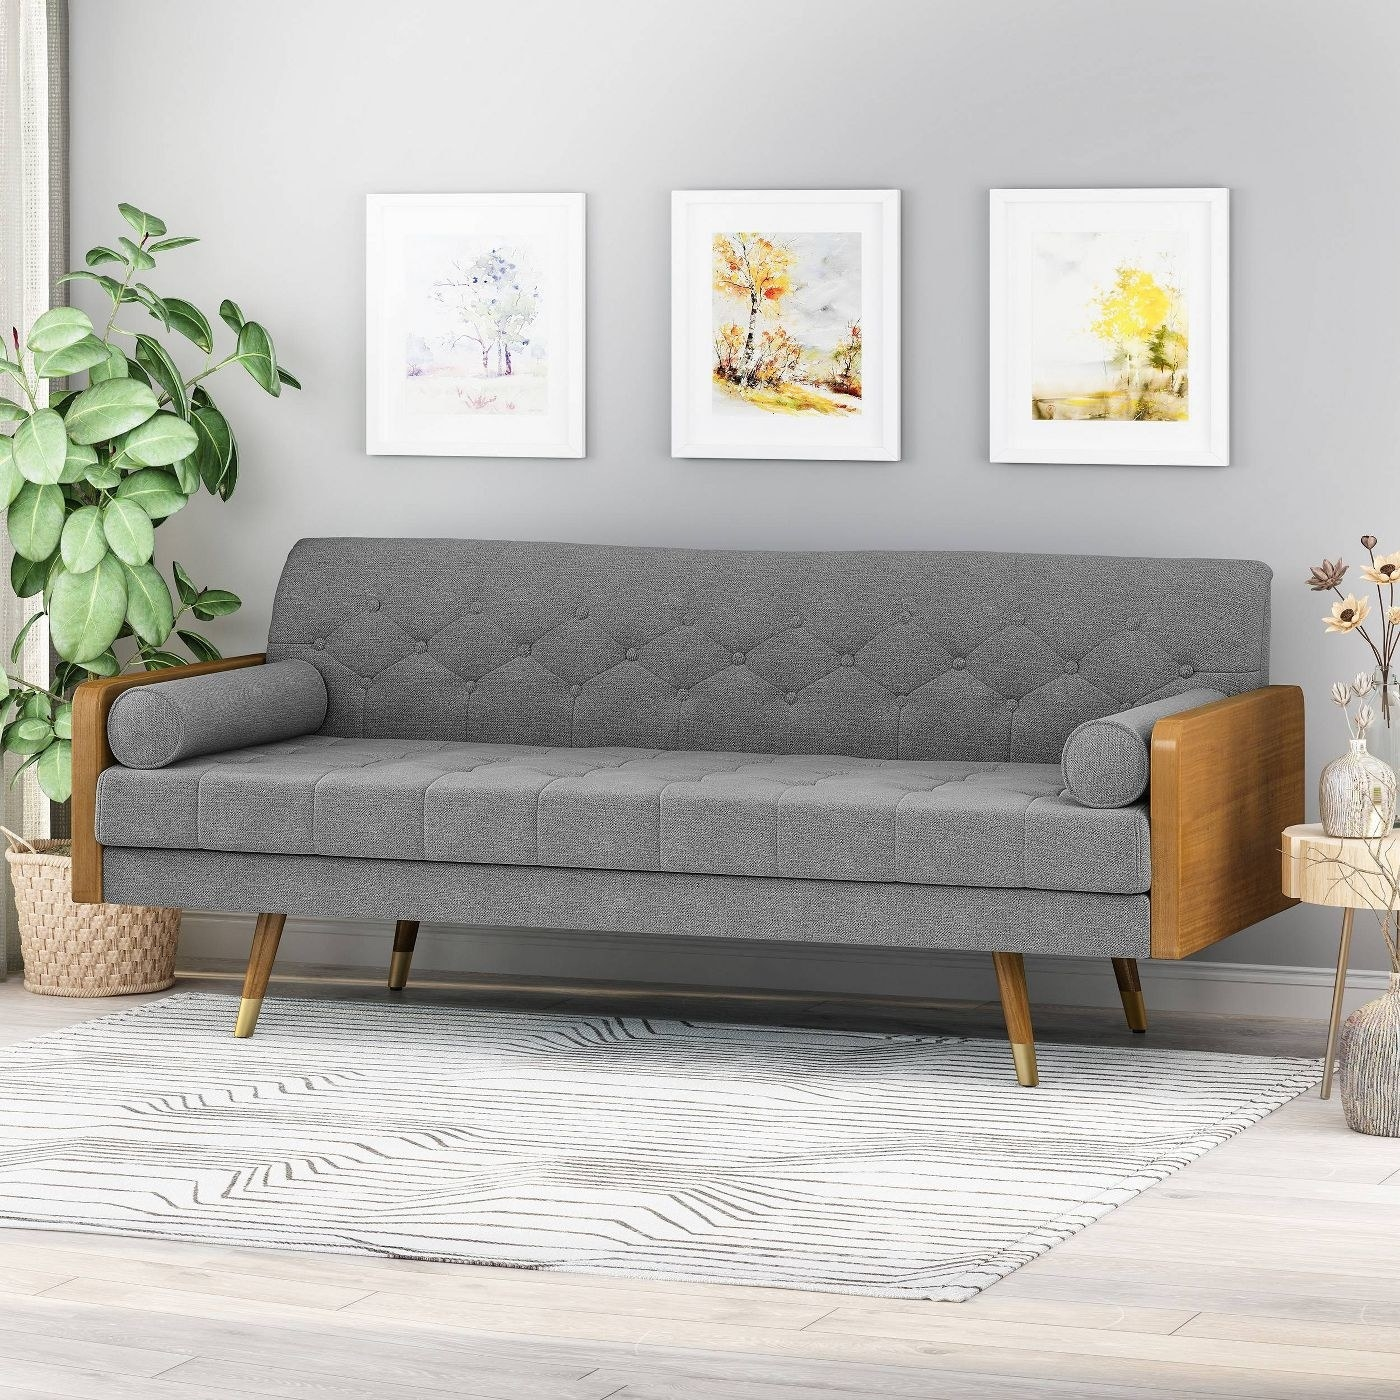 Mid-century modern grey couch with wooden accent legs and arms